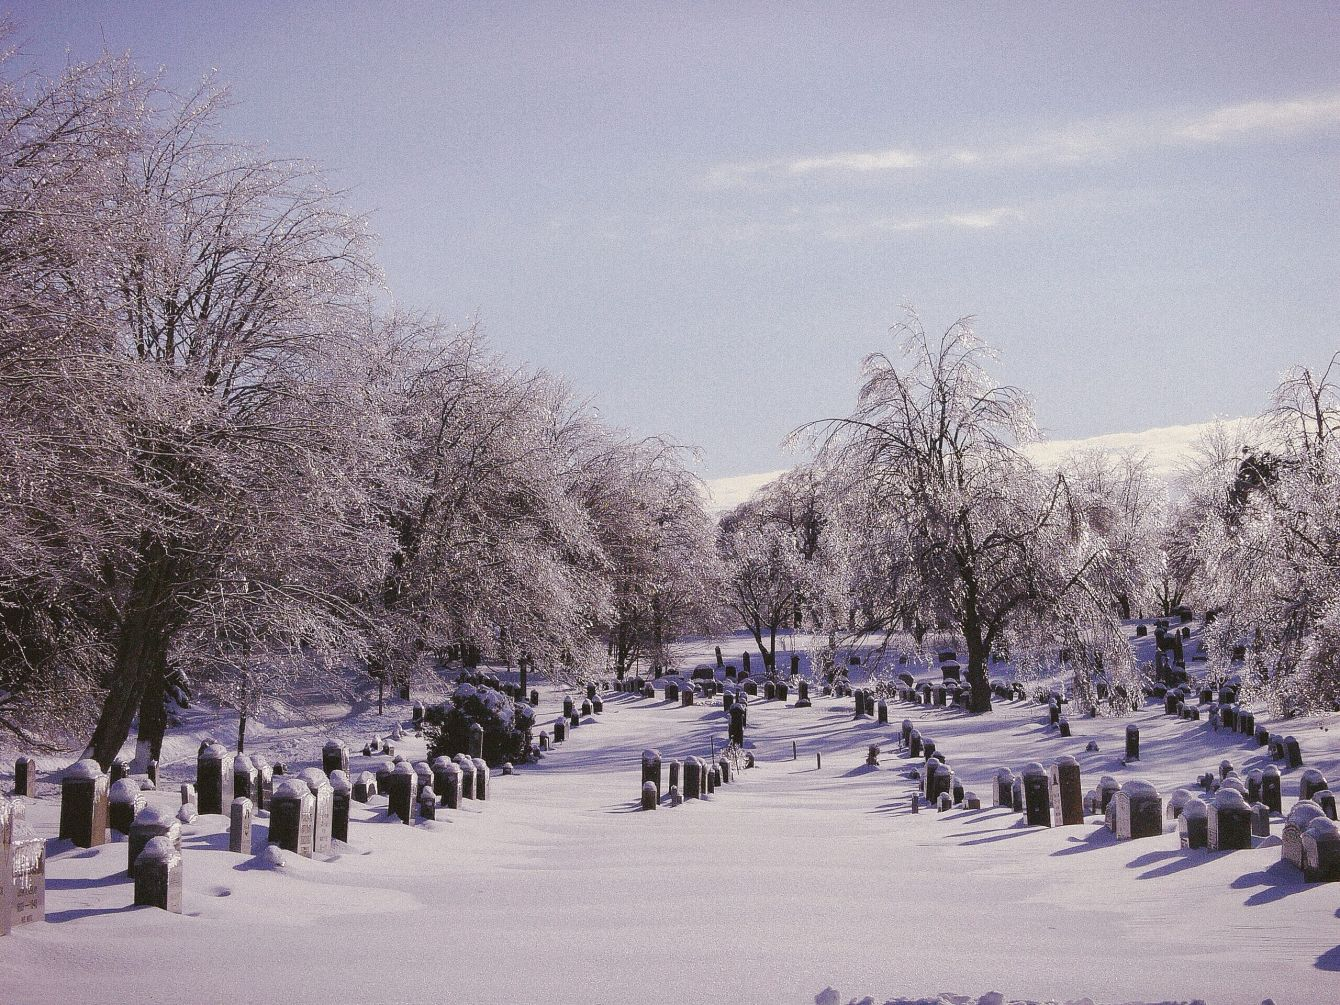 Click thumbnail to see details about photo - Saint John Cemetery Covered in Snow Photograph